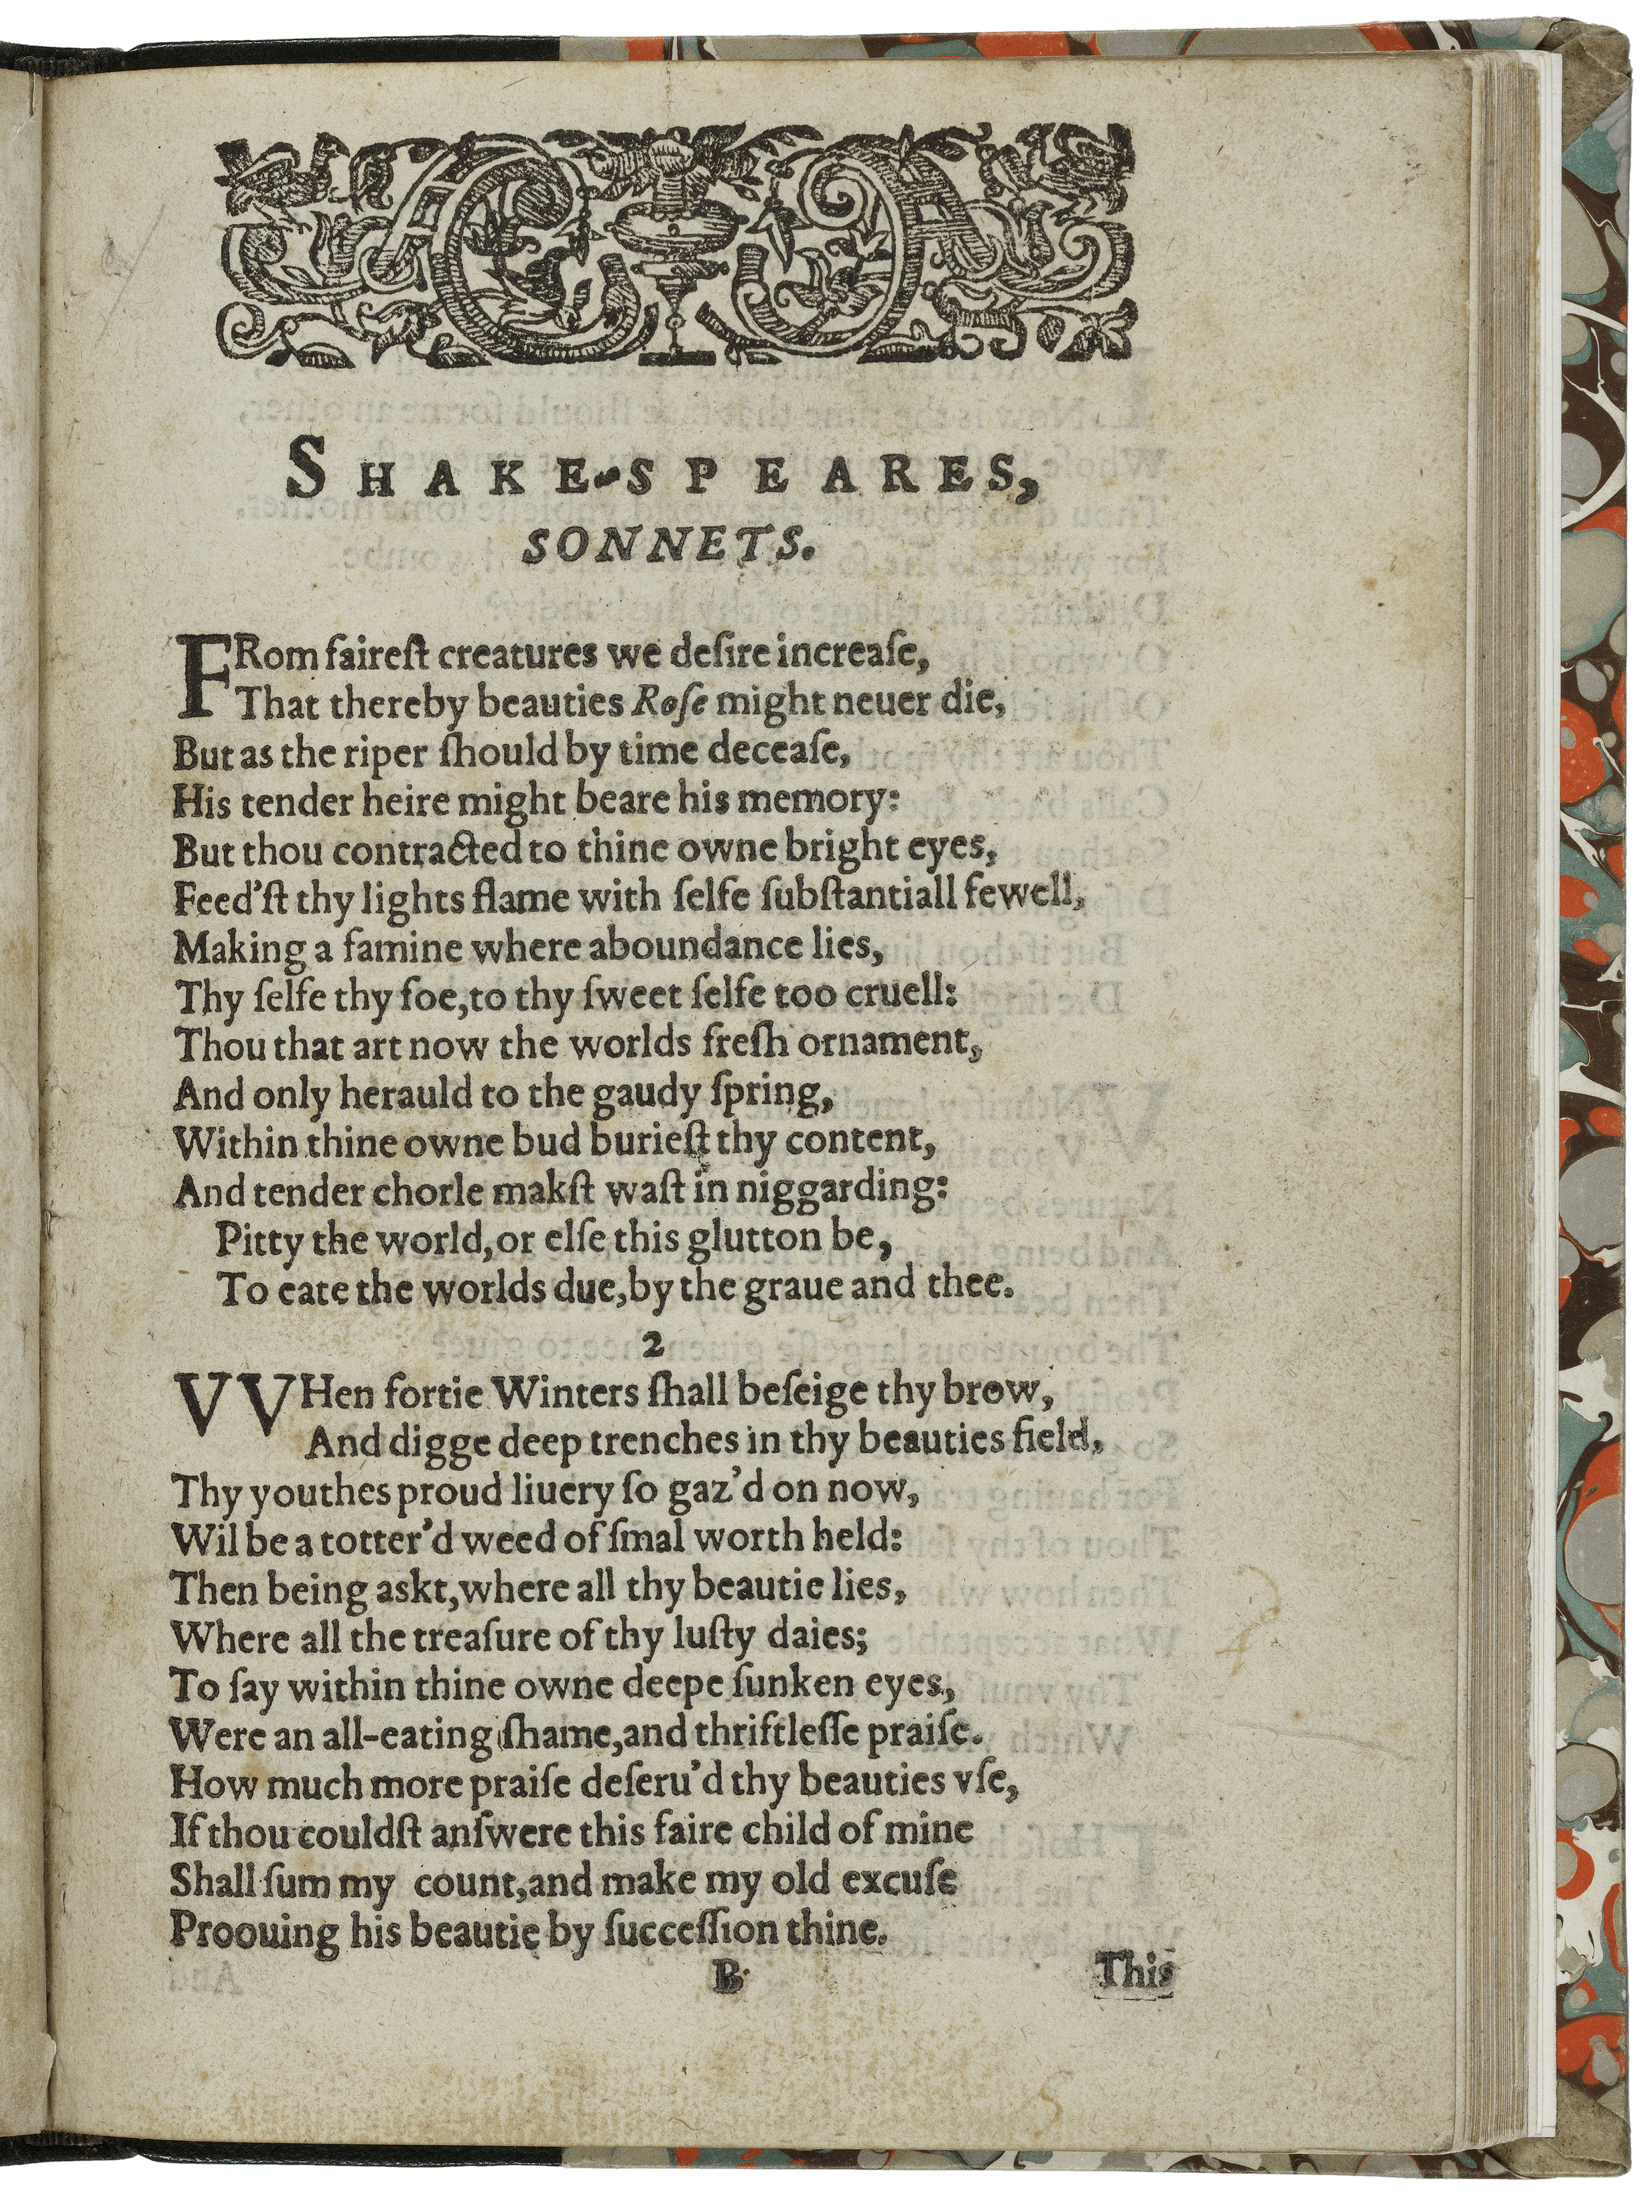 sonnet research papers Professionally written academic essays, reports and term papers on poetry researchpapersnet has been assisting students since 1999.